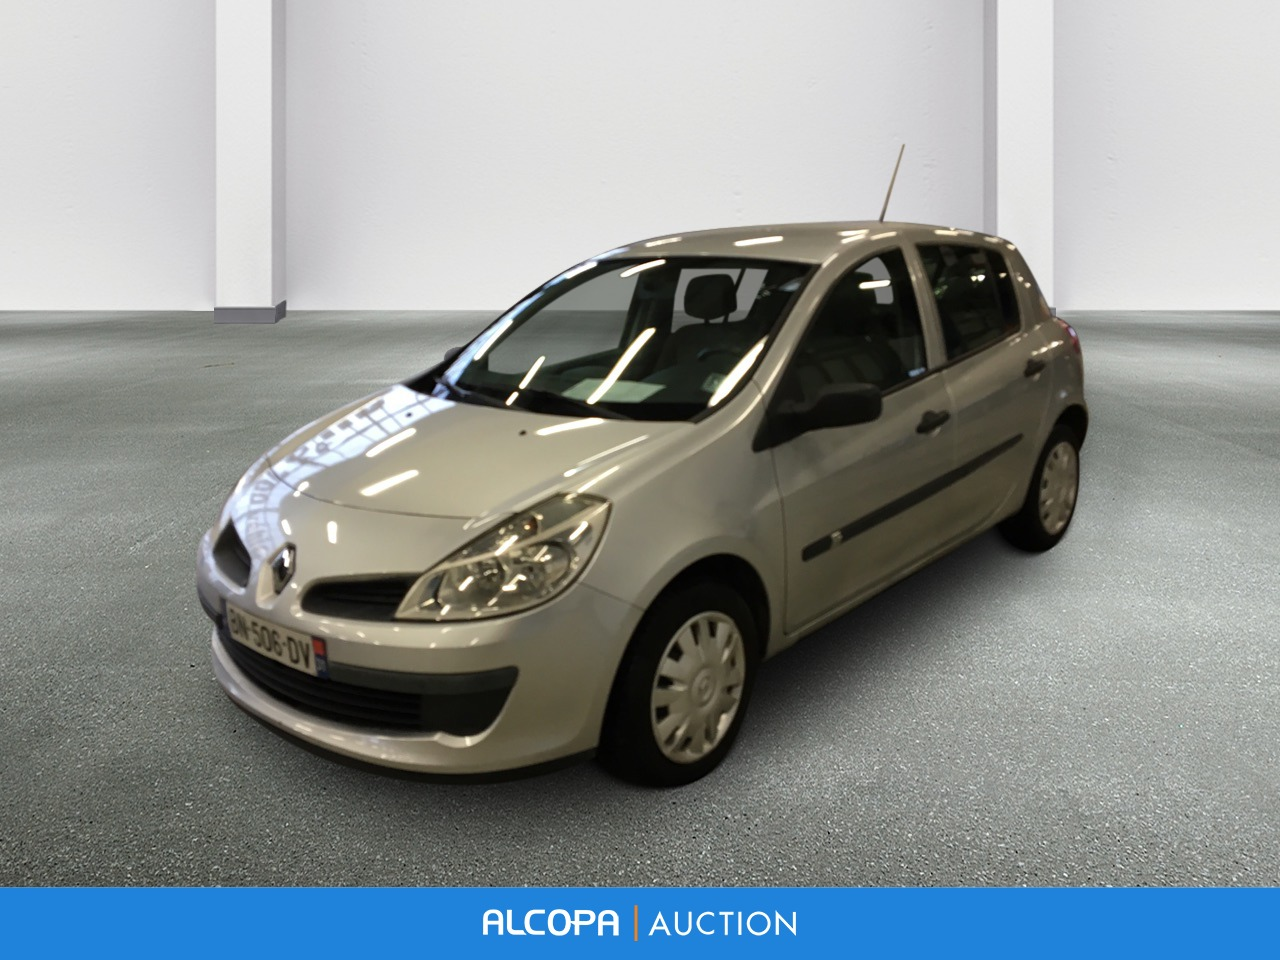 renault clio iii clio 1 5 dci 70 expression alcopa auction. Black Bedroom Furniture Sets. Home Design Ideas